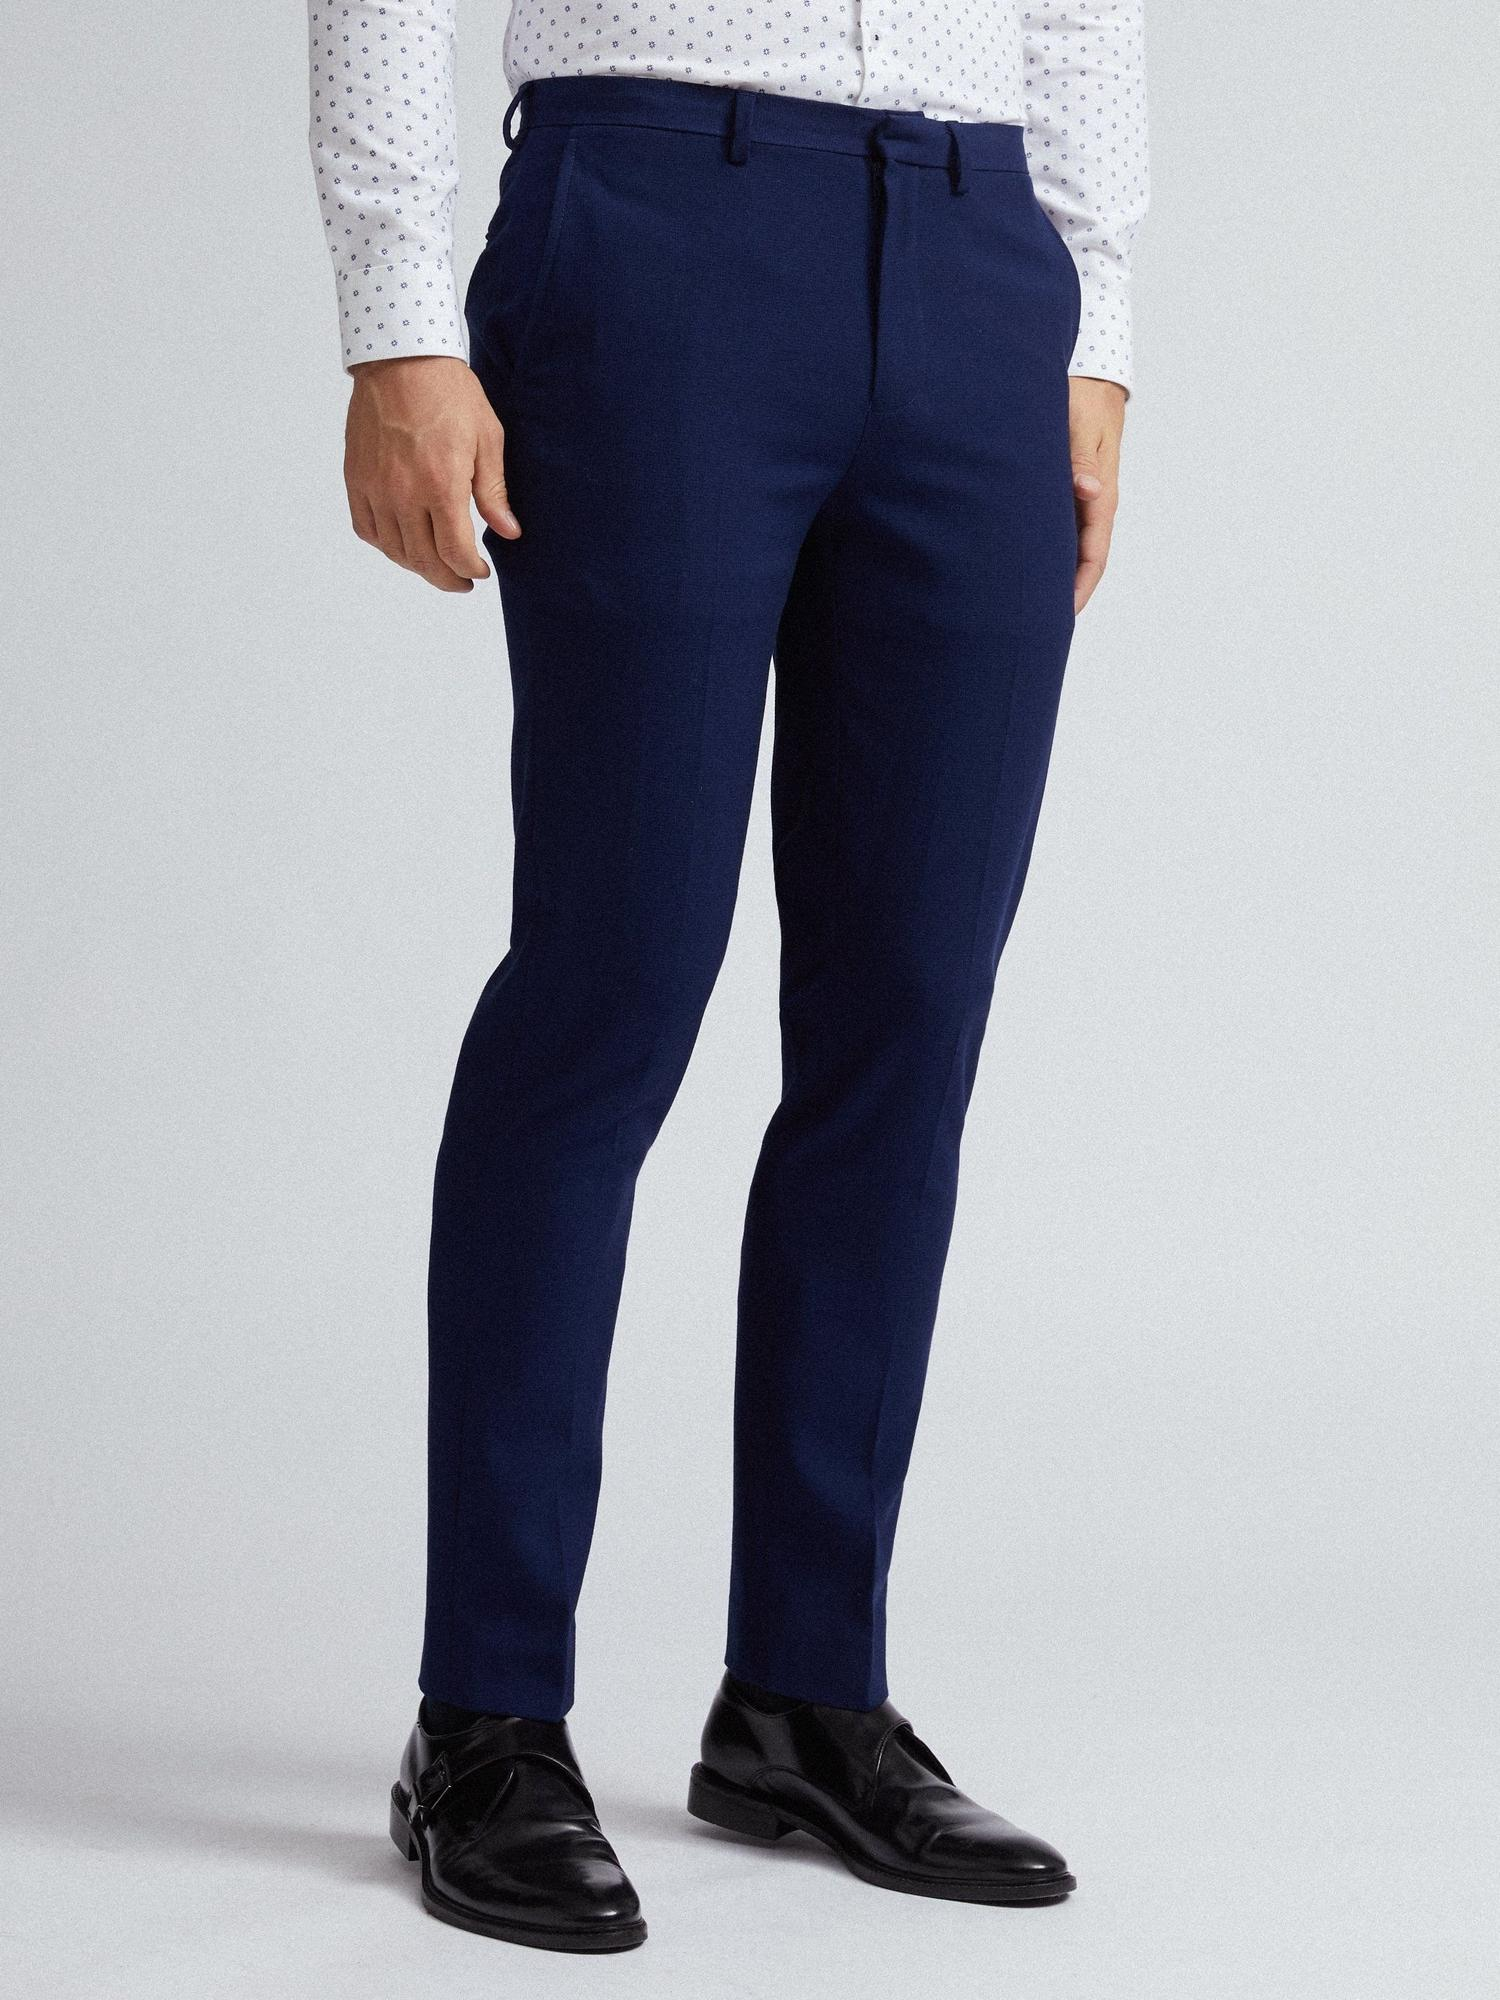 148 Blue Texture Skinny Fit Suit Trousers image number 2